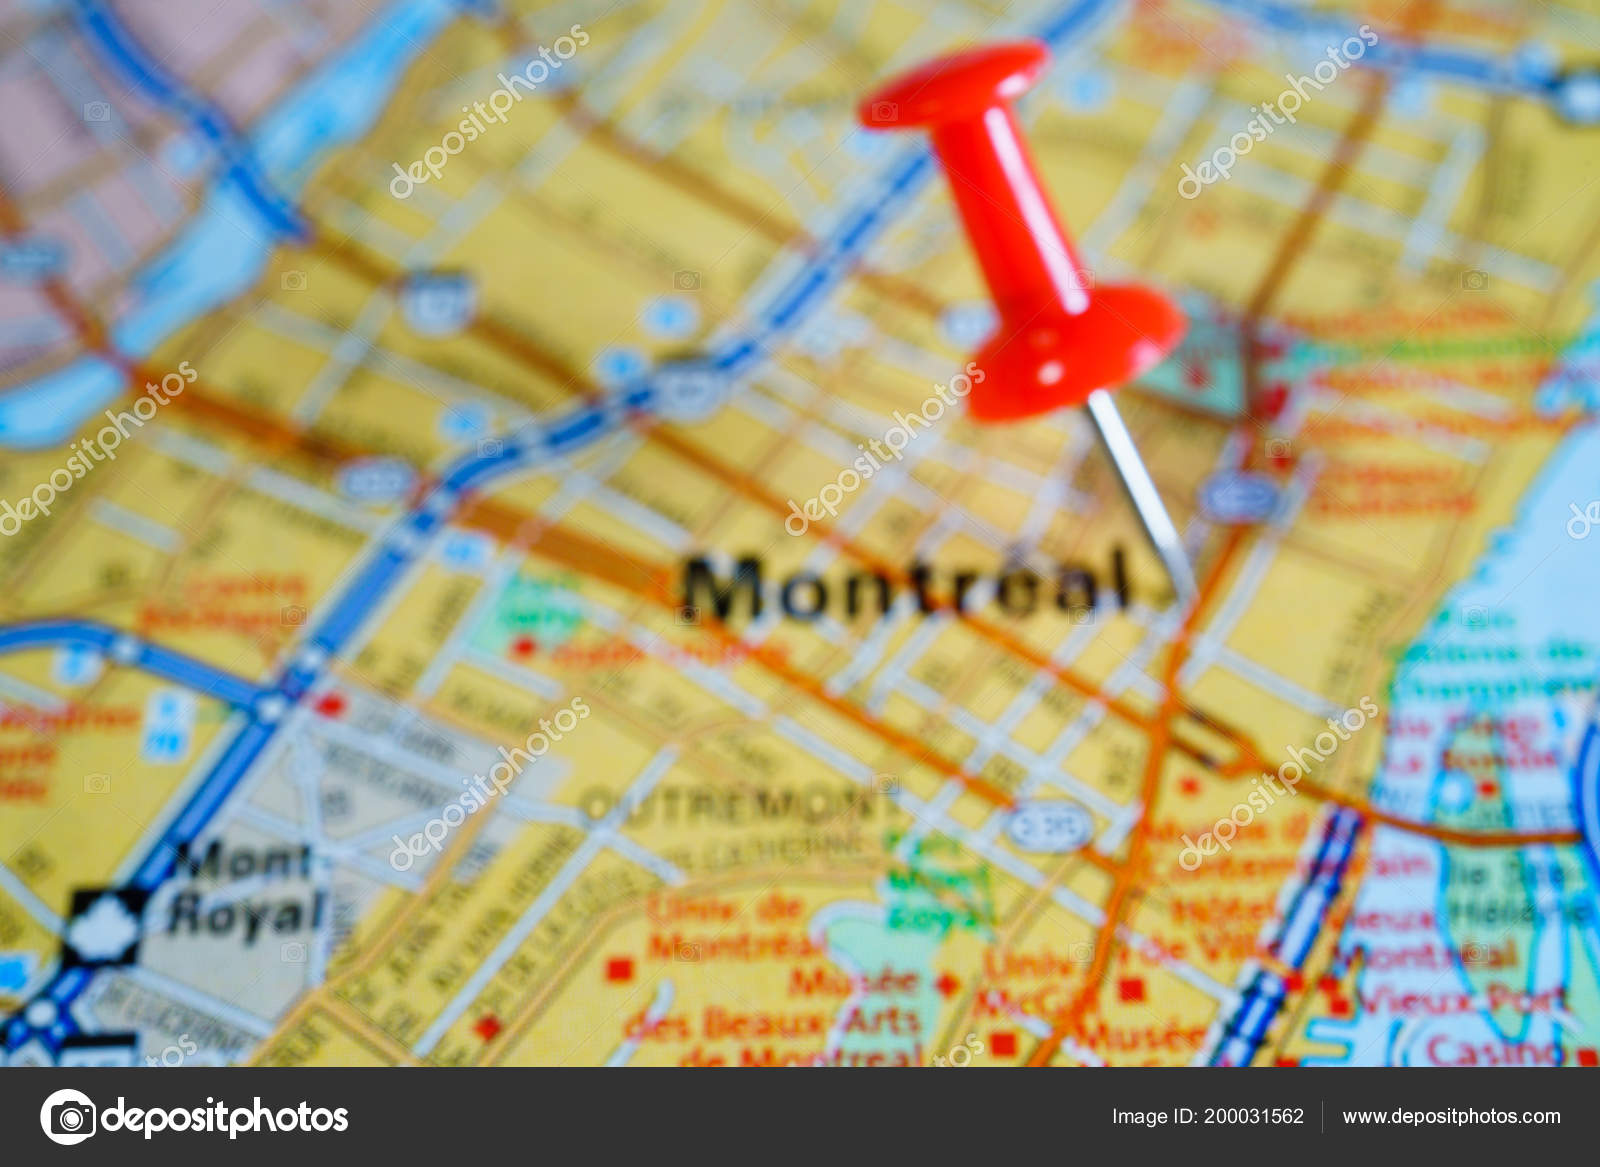 Canada Map Montreal.Montreal Canada Map Stock Photo C Aallm 200031562